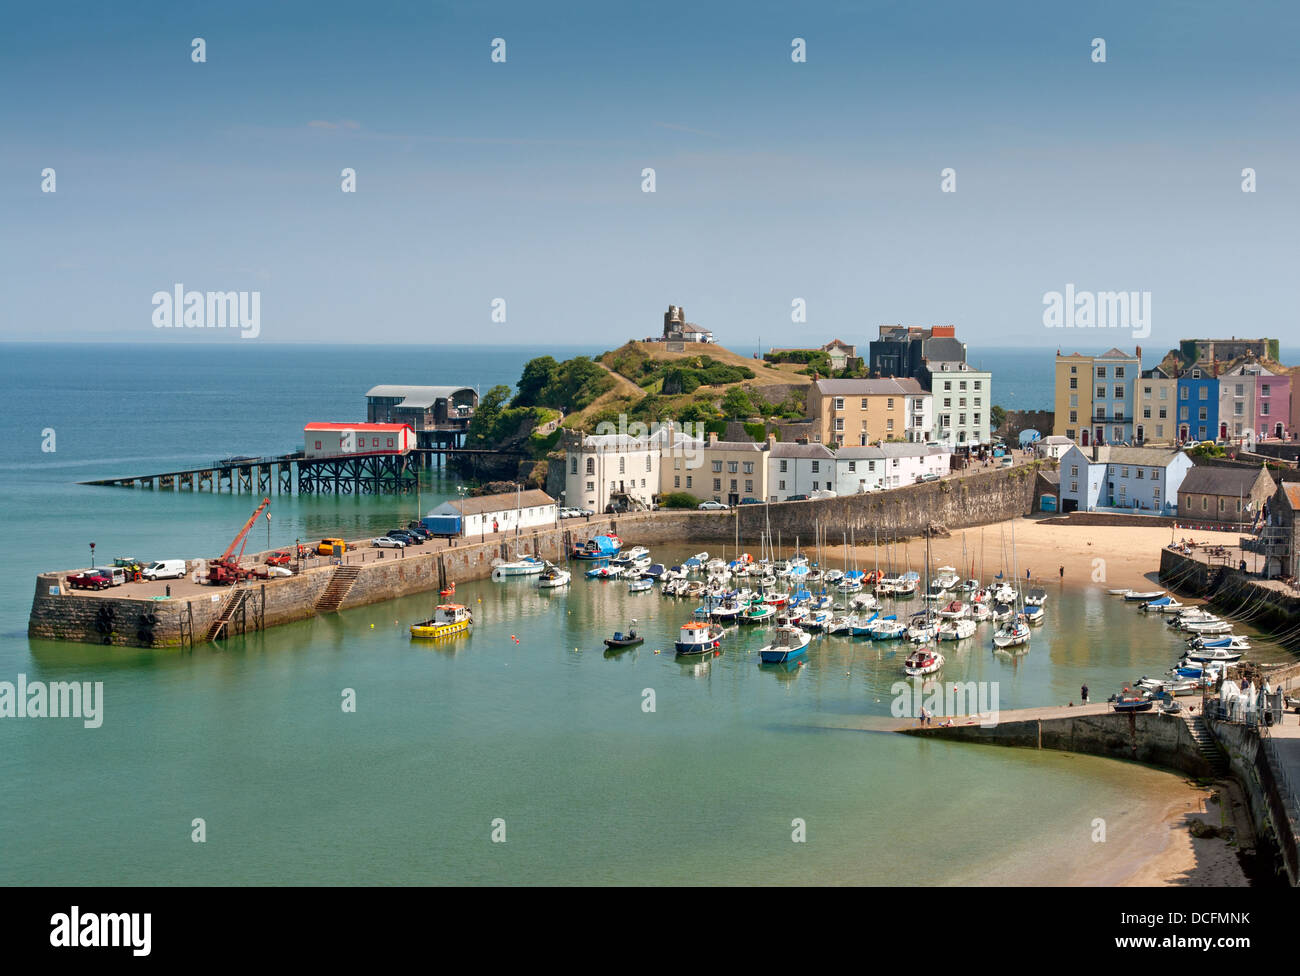 The harbour at Tenby, Pembrokeshire;Wales - Stock Image